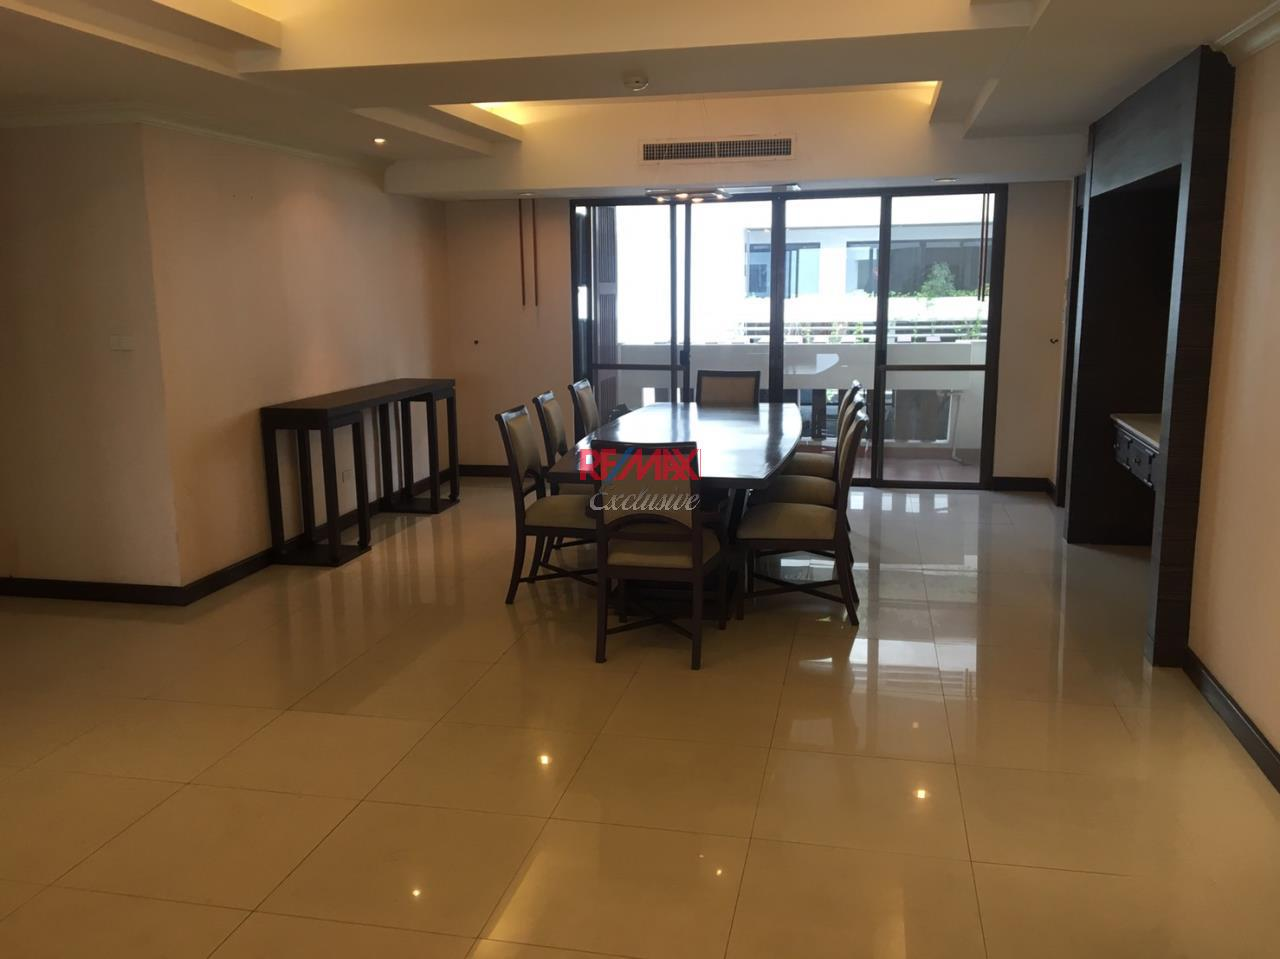 RE/MAX Exclusive Agency's Hawaii Tower, 3 Bedroom, 330 Sqm., Fully-Furnished, Special Price for RENT !!! 3